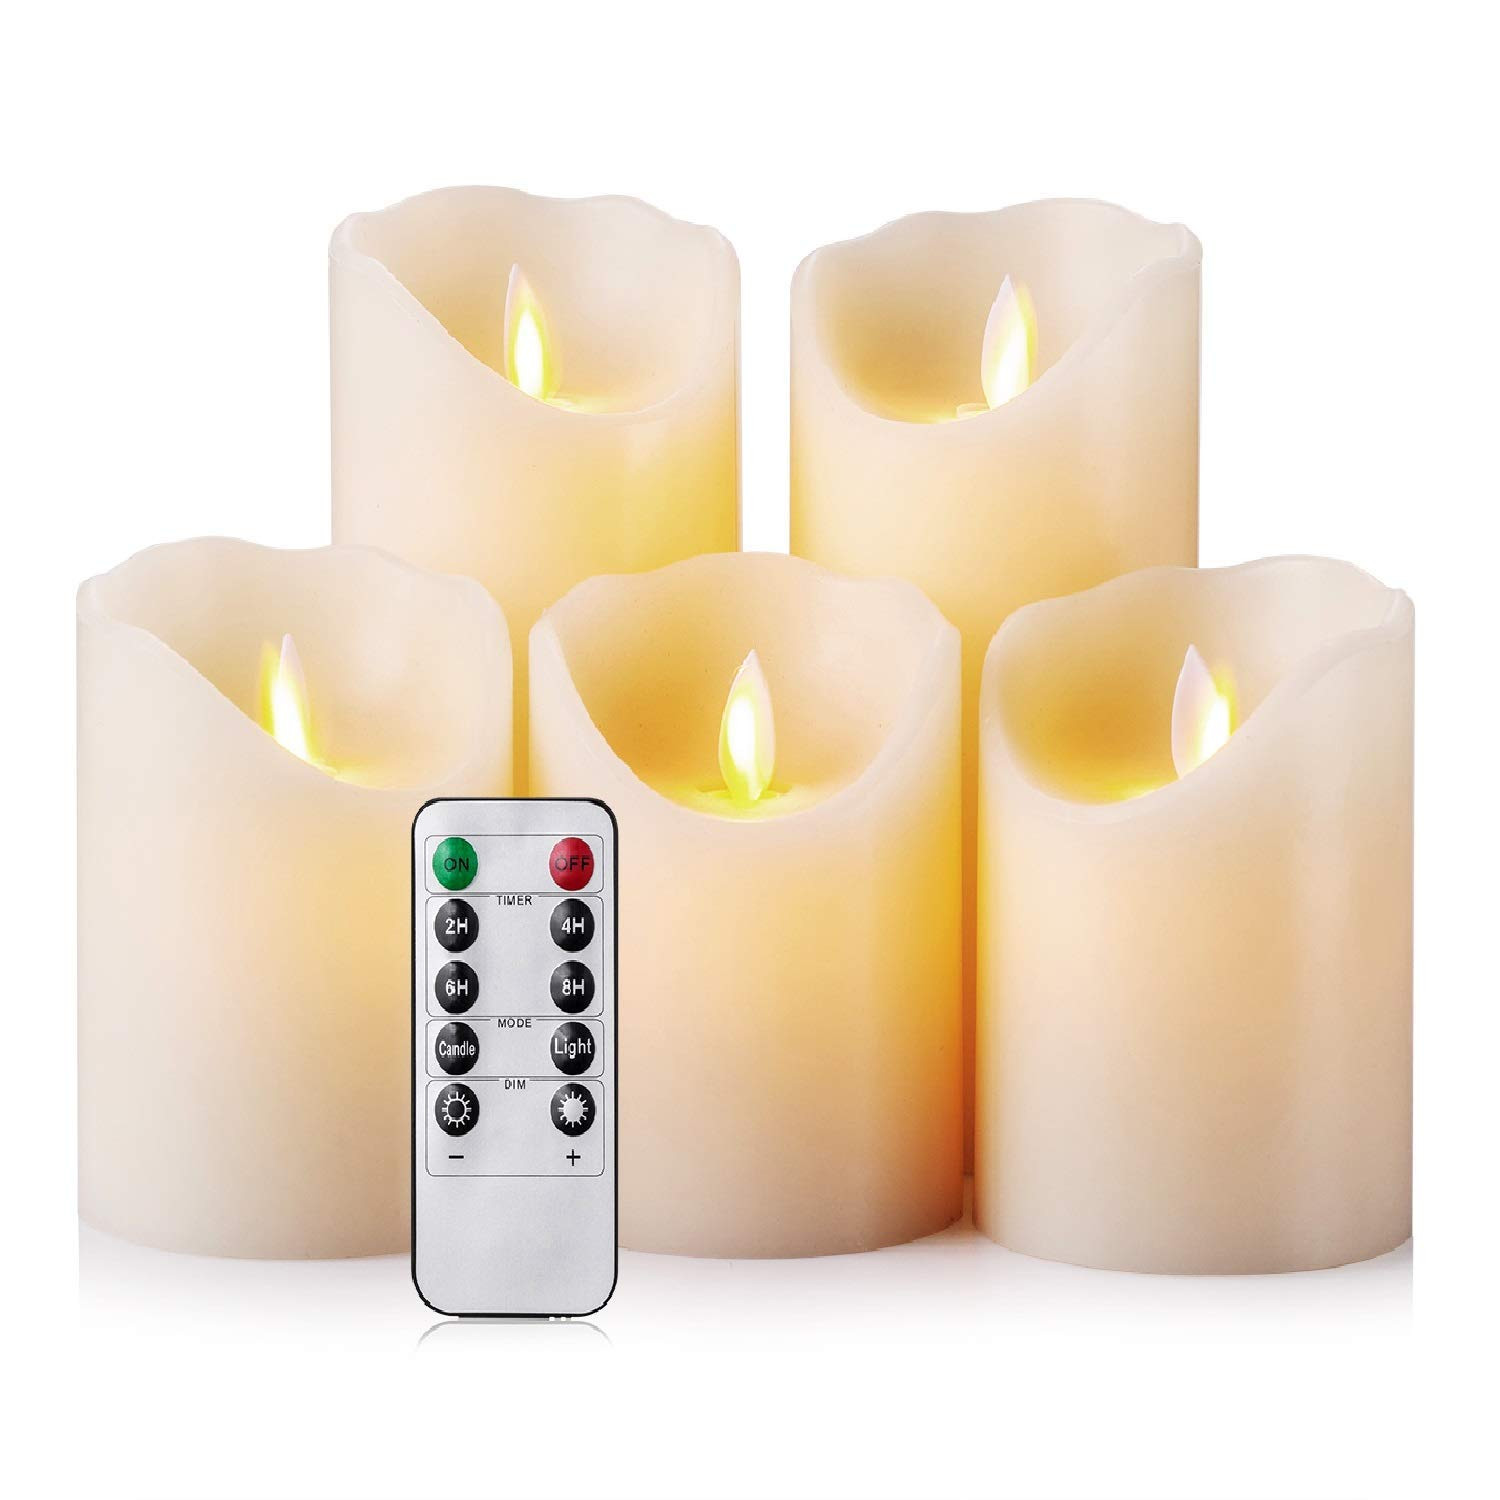 pillar candle vases bulk of amazon com flameless candles led candles realistic moving set of 5 inside amazon com flameless candles led candles realistic moving set of 5 ivory battery candles real wax pillar with 10 key remote control timer 2 4 6 8 hours